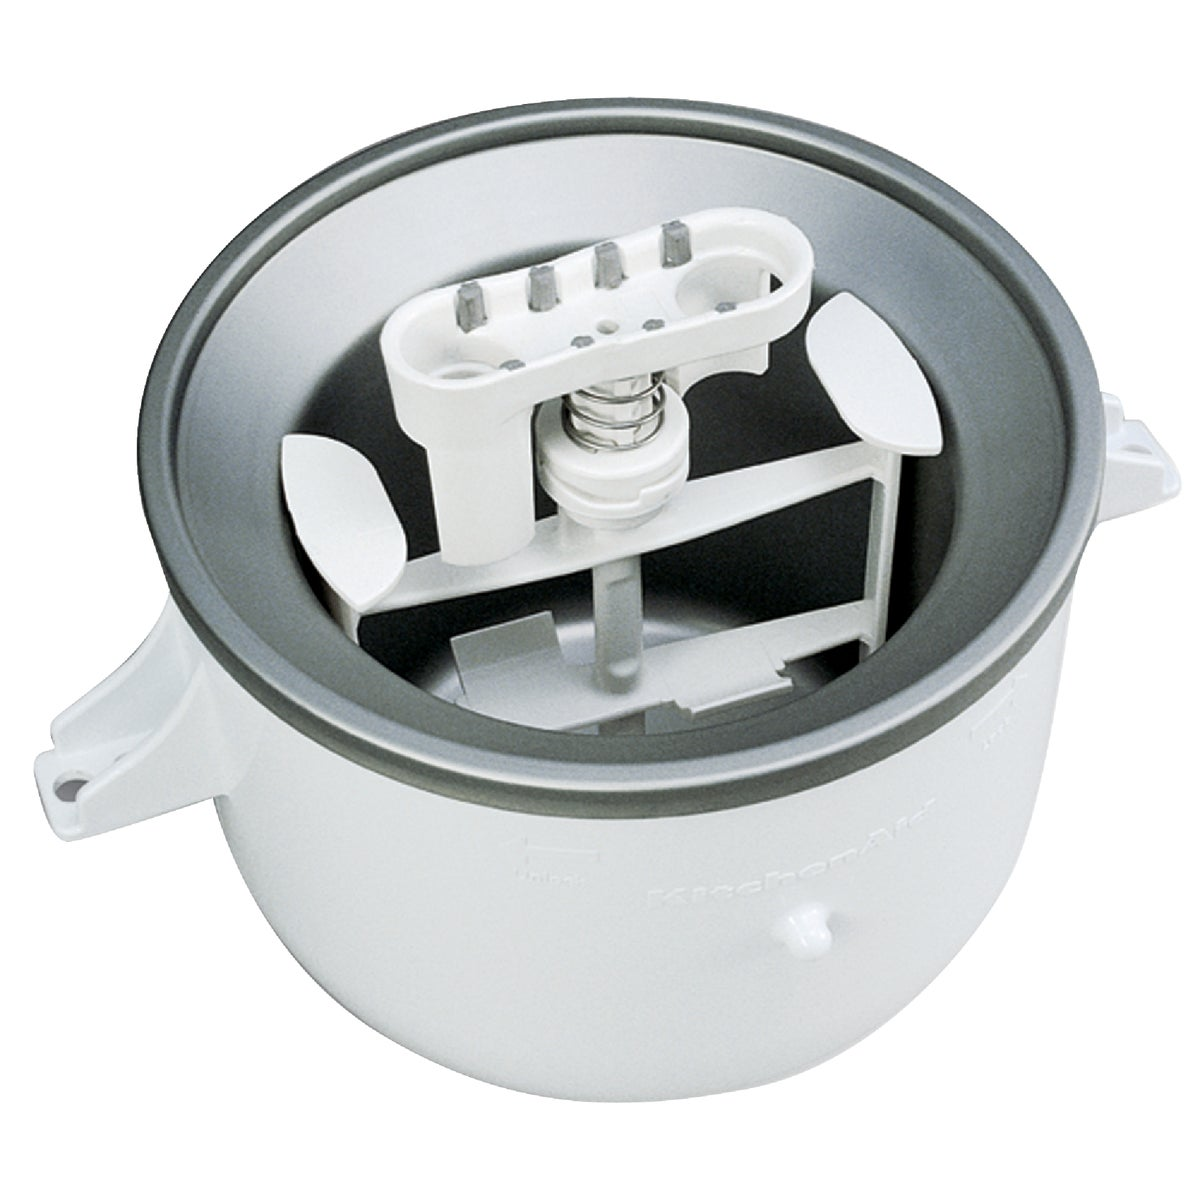 ICE CREAM MAKER ATTACH - KICA0WH by Kitchenaid Inc